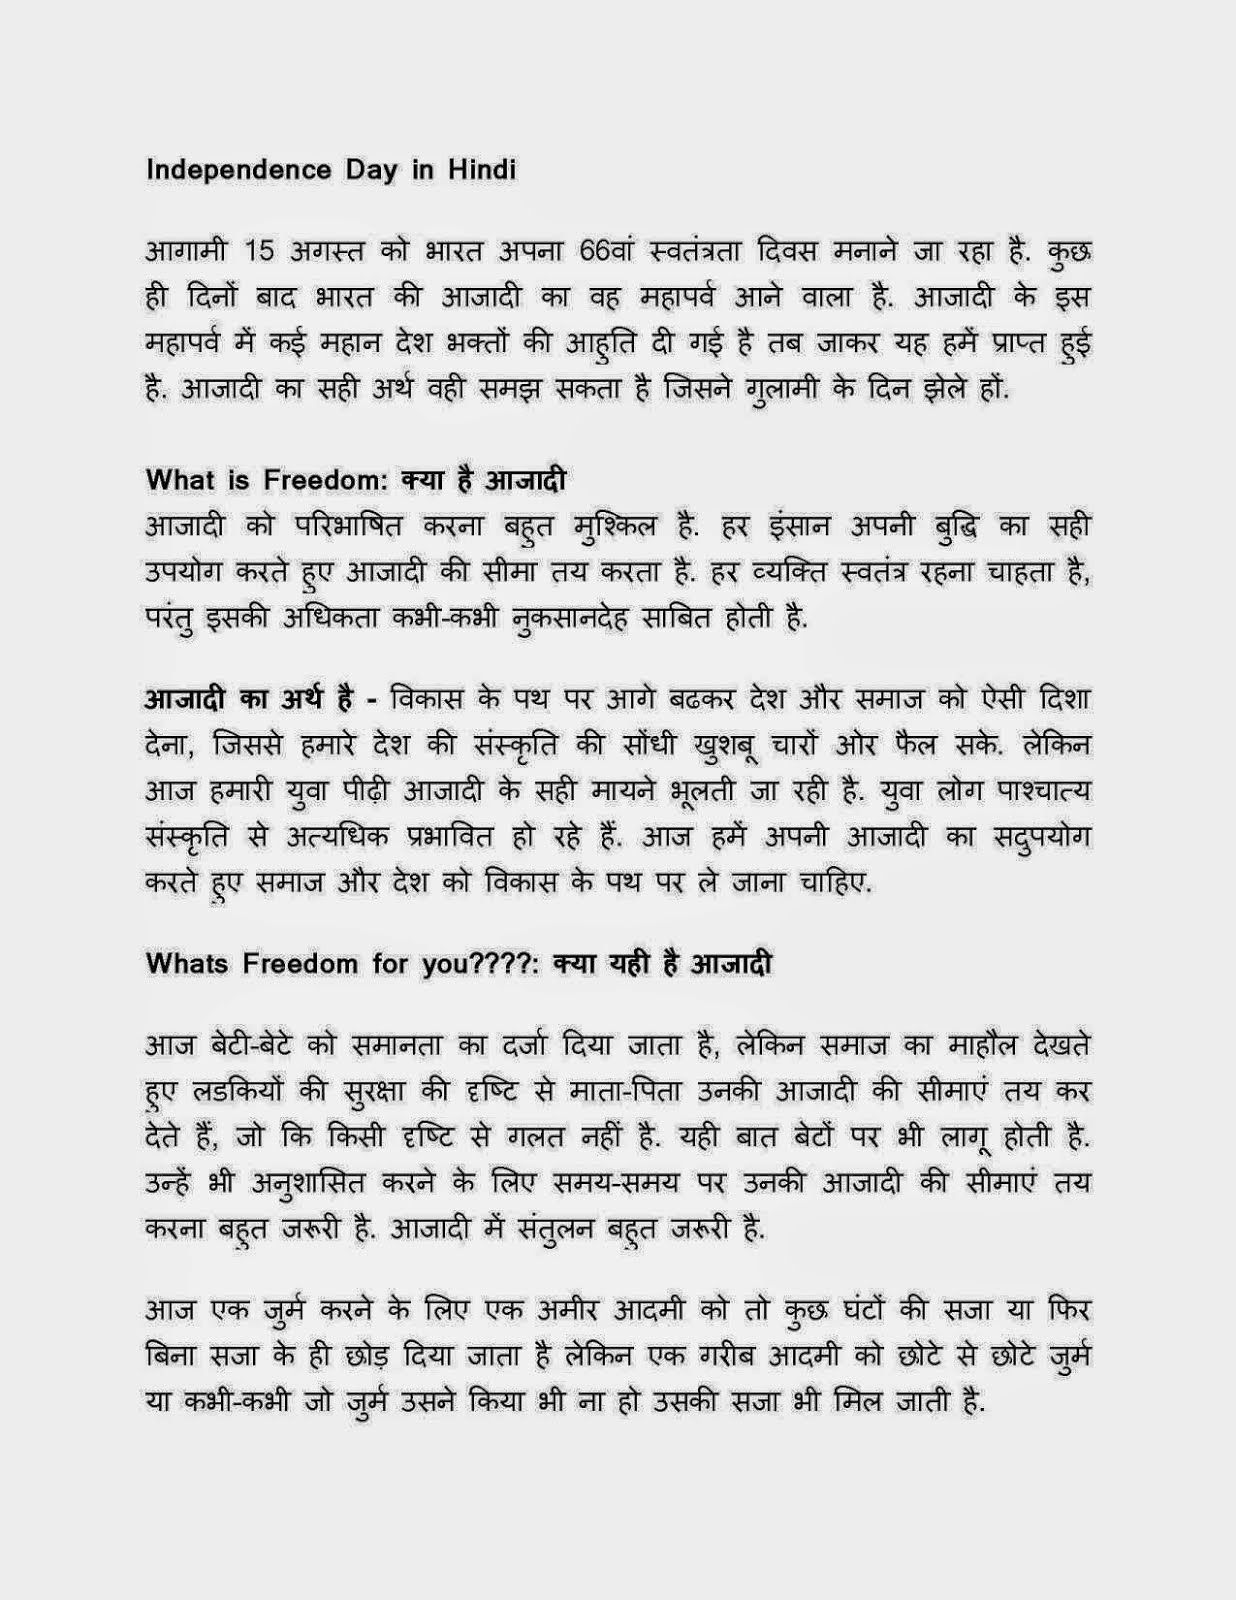 essay about independence day independence day essay in hindi independence day